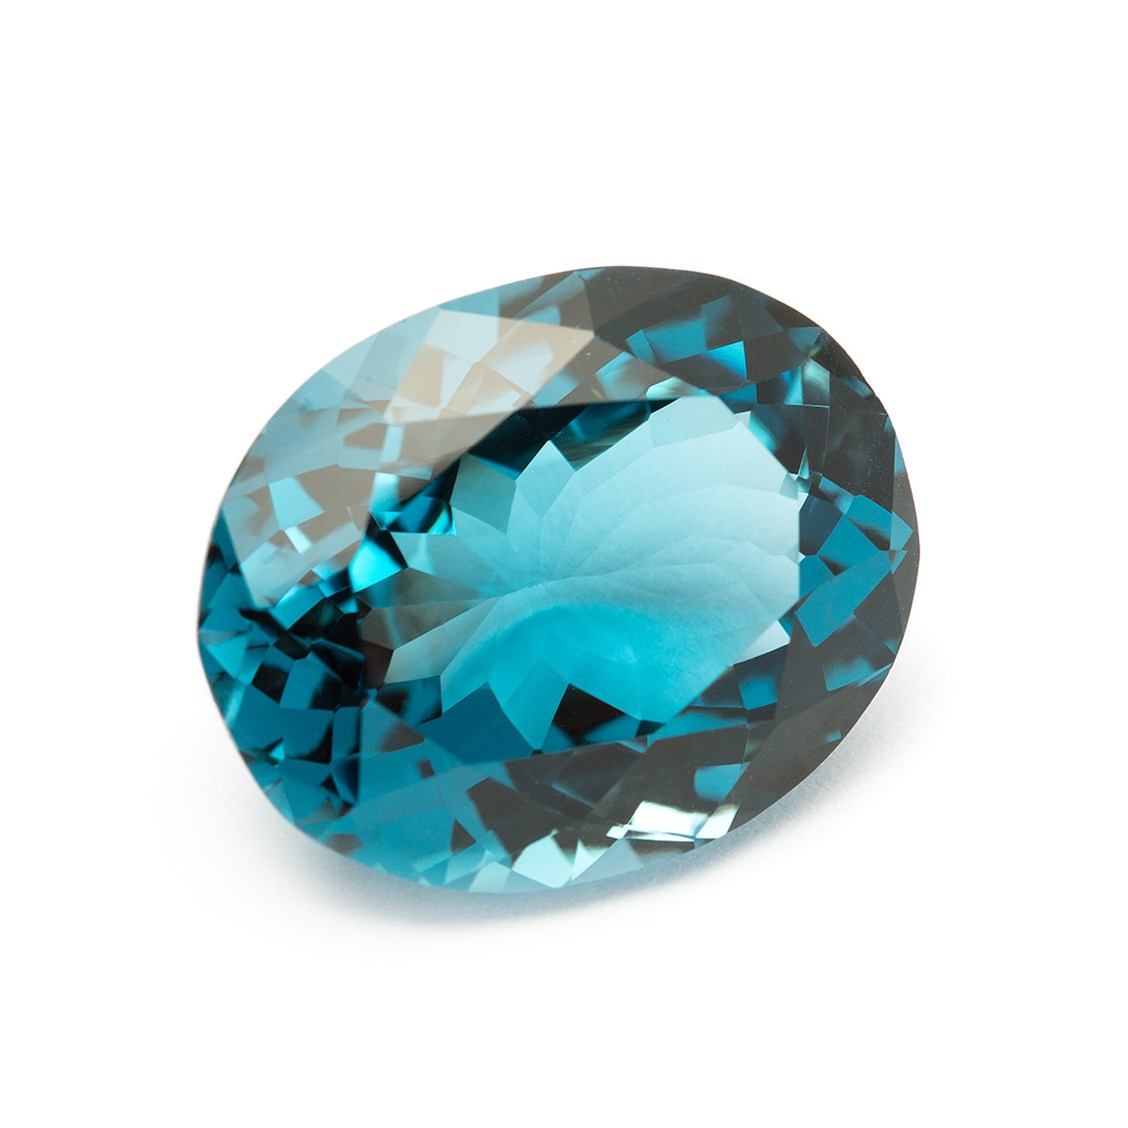 Blue Topaz Stone : London blue topaz mm faceted oval stone